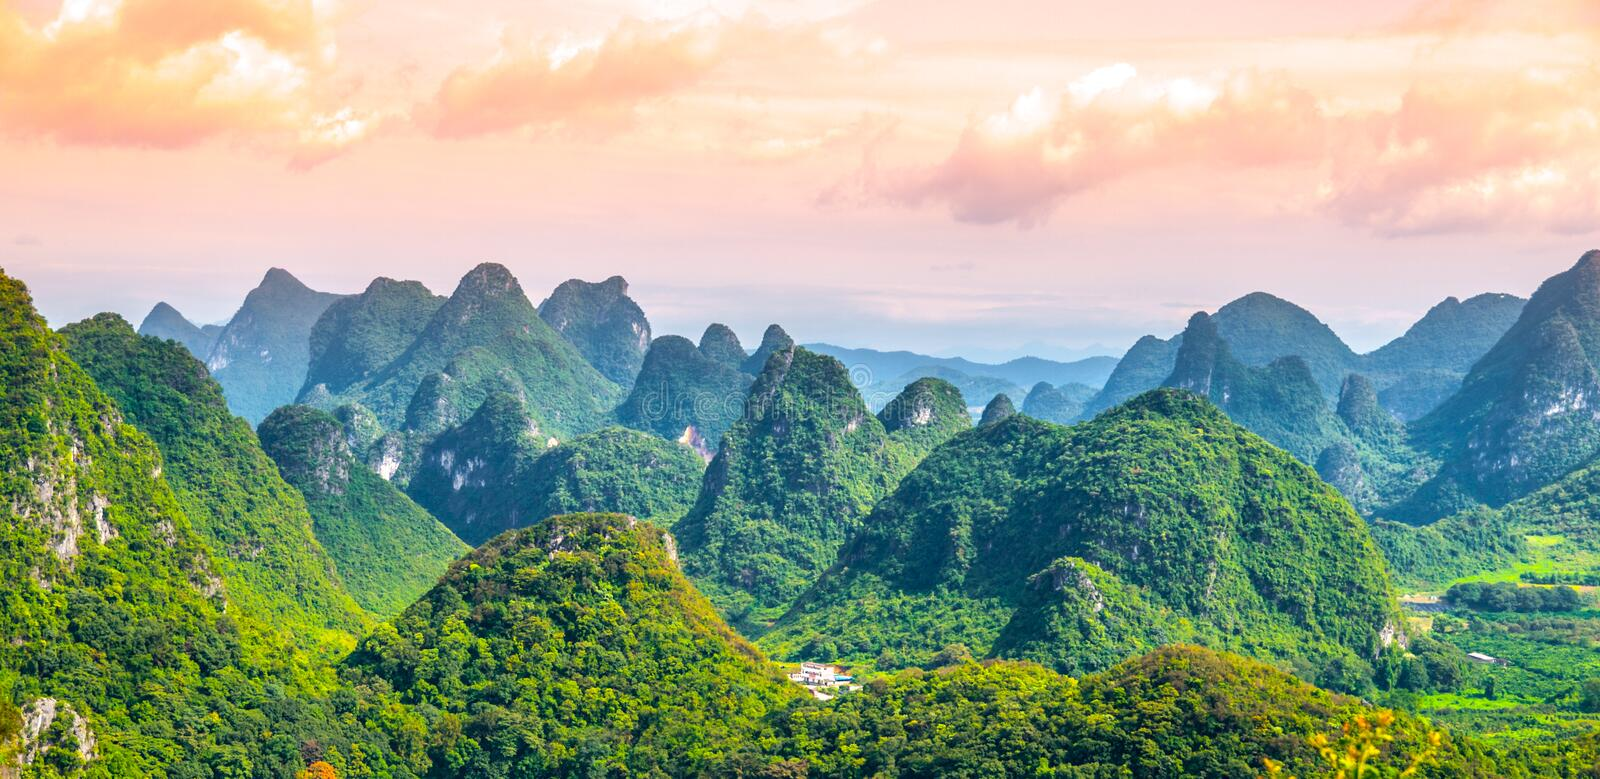 Panoramic view of landscape with karst peaks around Yangshuo County and Li River, Guangxi Province, China royalty free stock photo